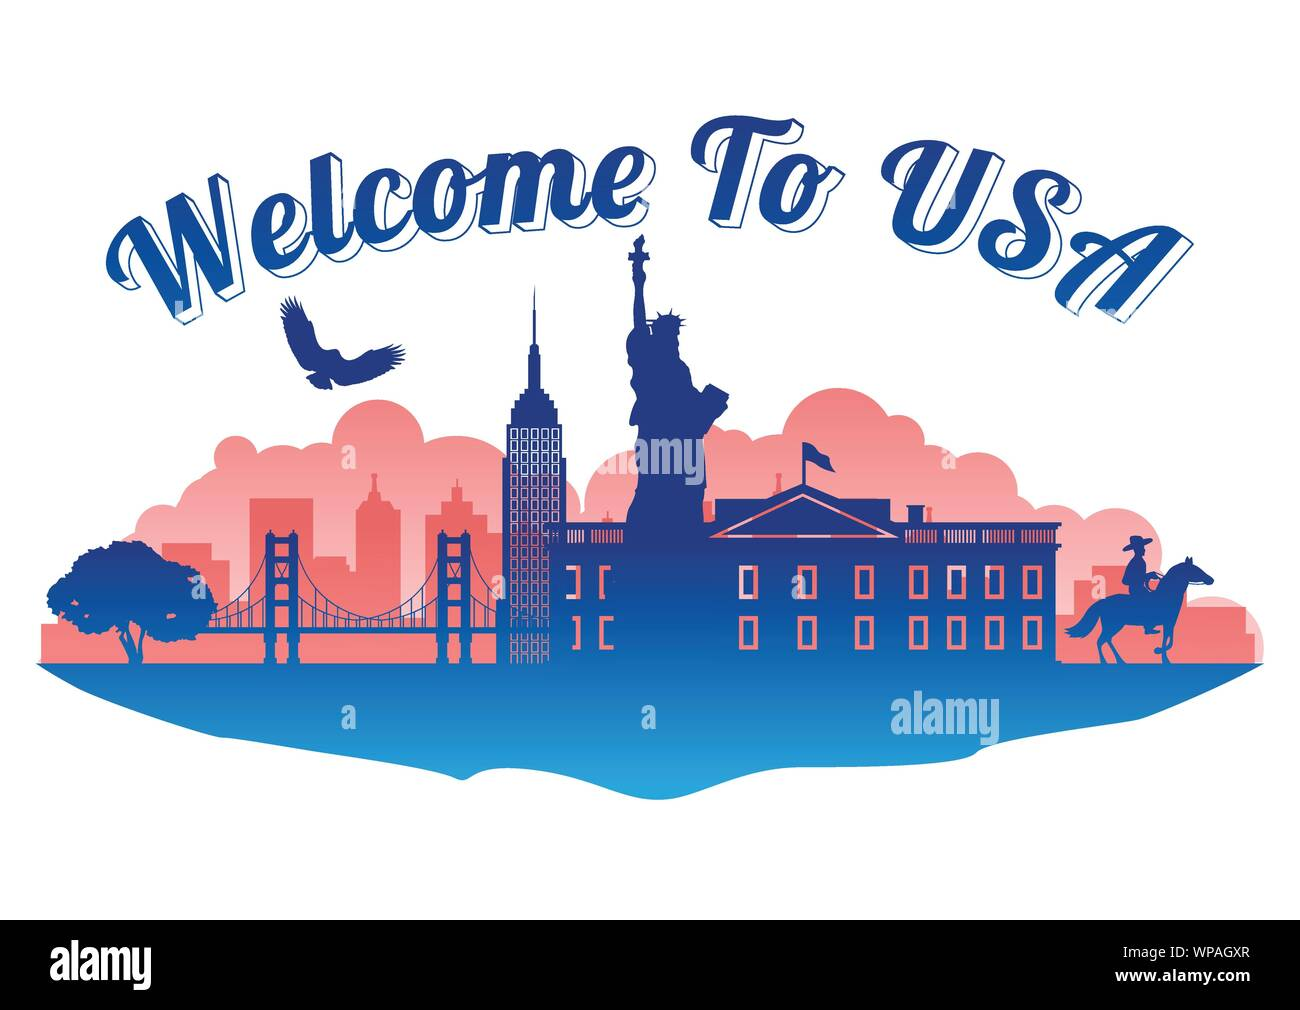 USA top famous landmark silhouette style on island  famous landmark silhouette style,welcome to usa,travel and tourism,vector illustration Stock Vector